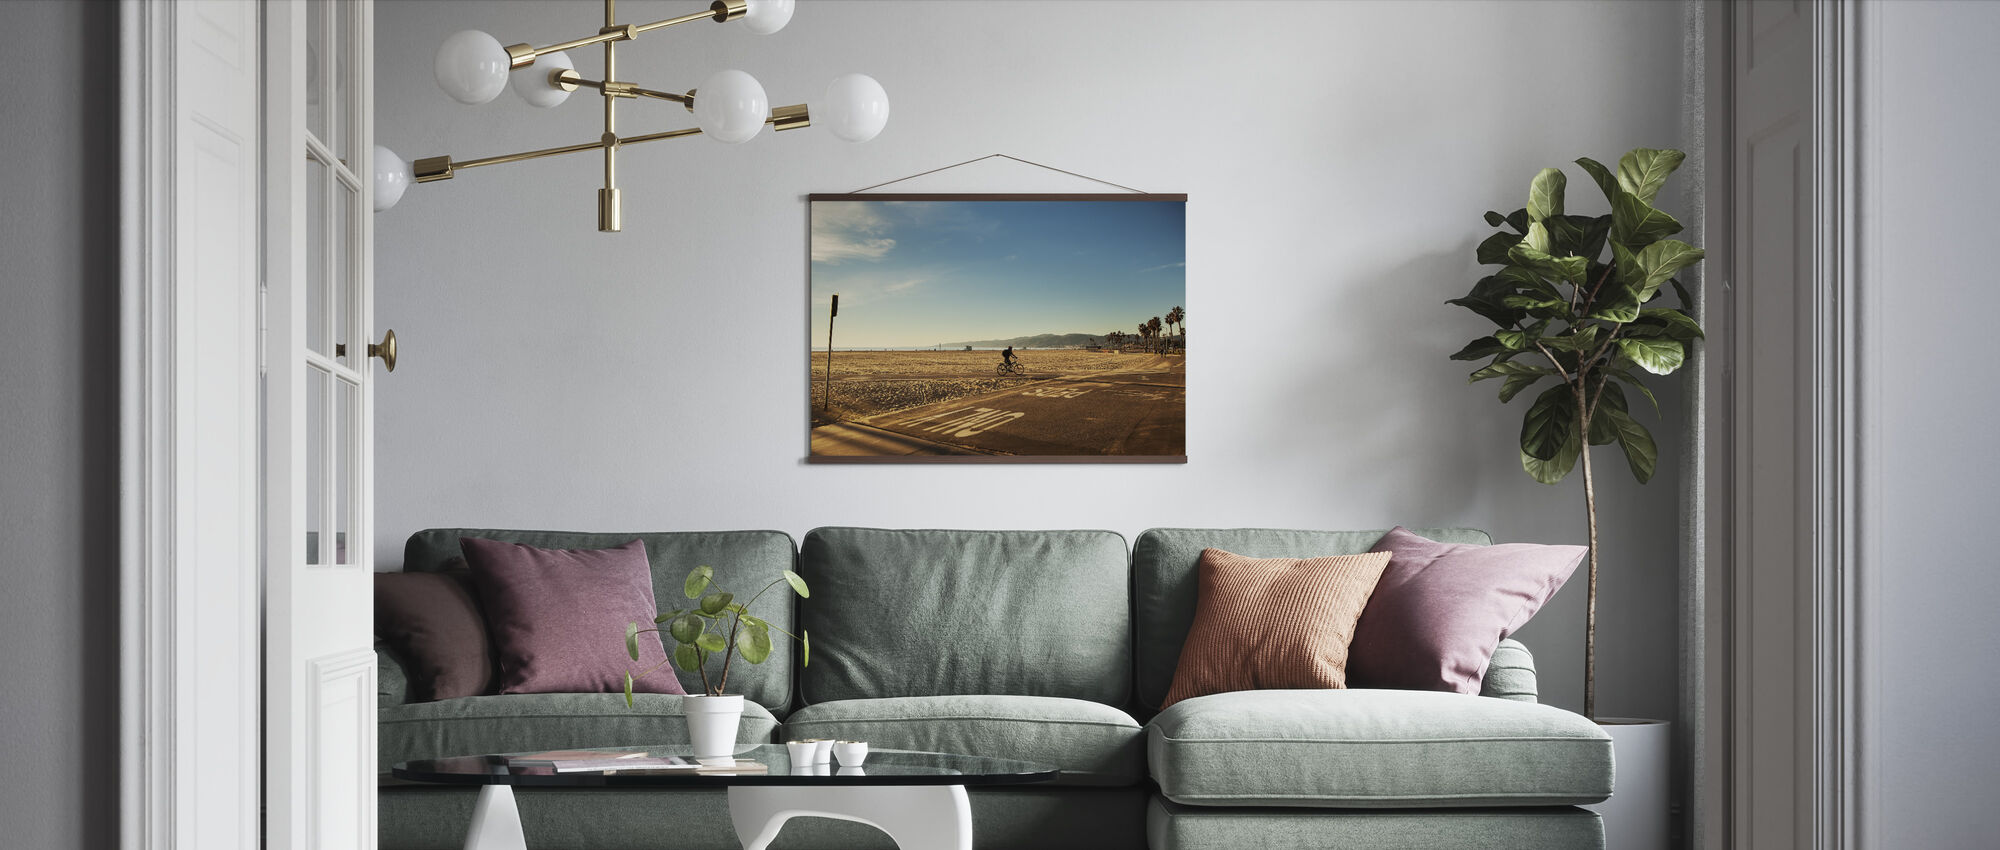 Venice Beach, Los Angeles - Poster - Living Room